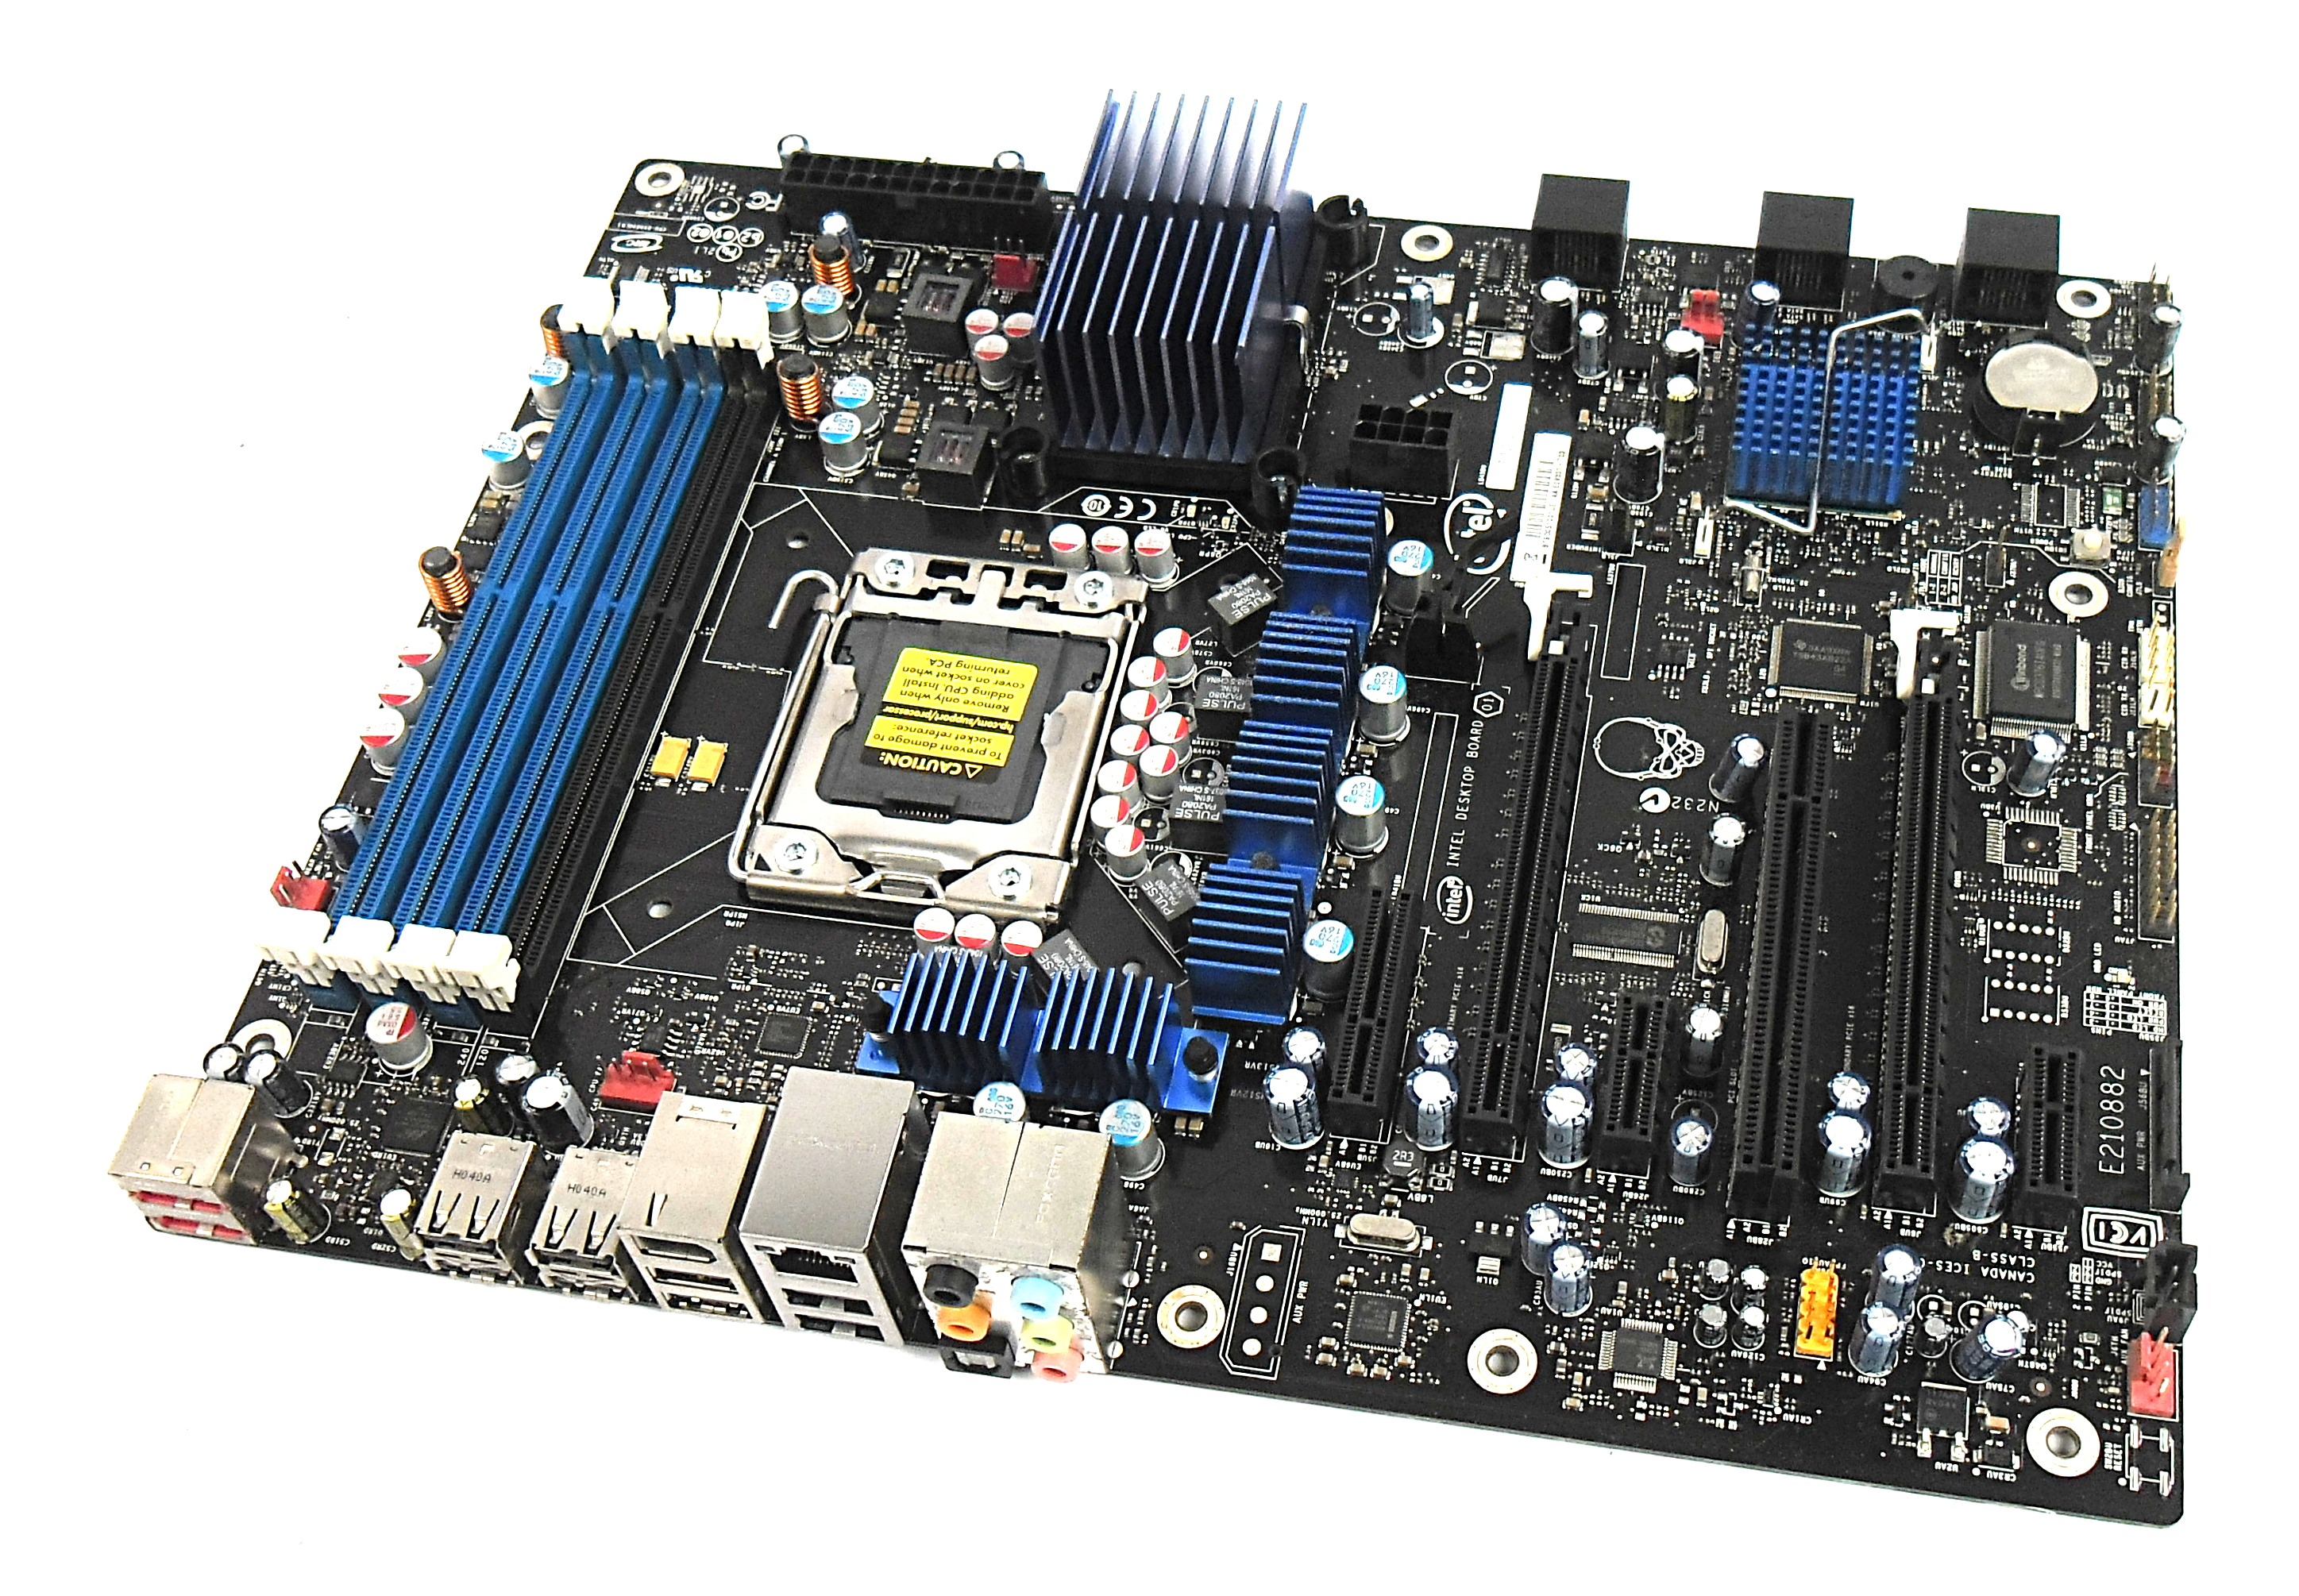 Intel DX58SO Socket LGA1366 ATX Motherboard